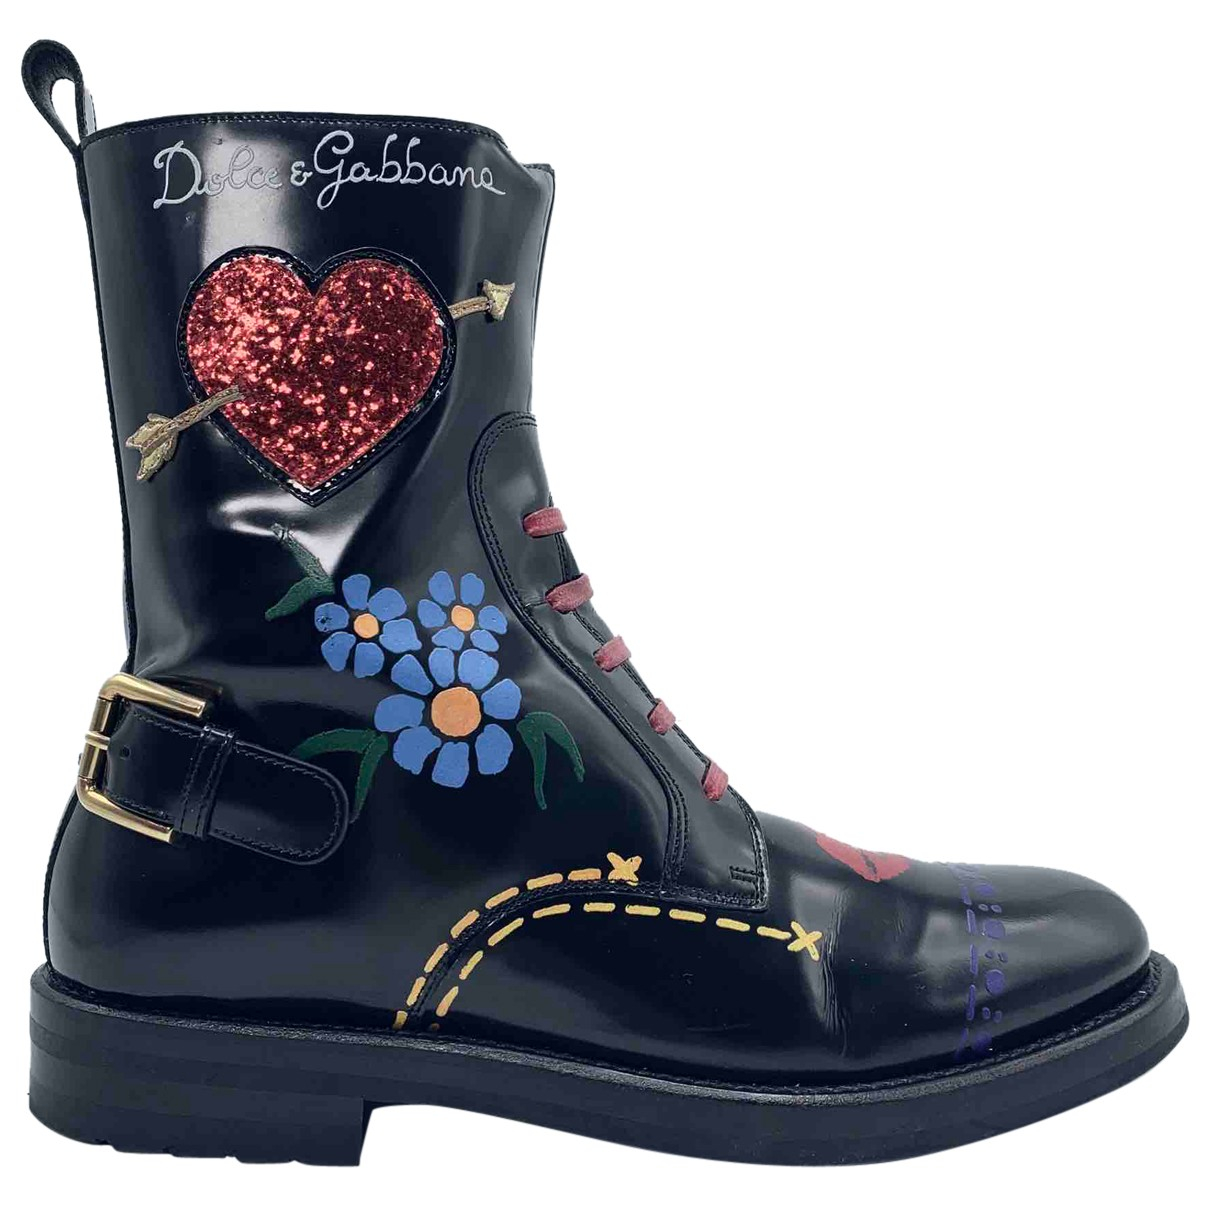 Dolce & Gabbana N Black Leather Ankle boots for Women 37 EU